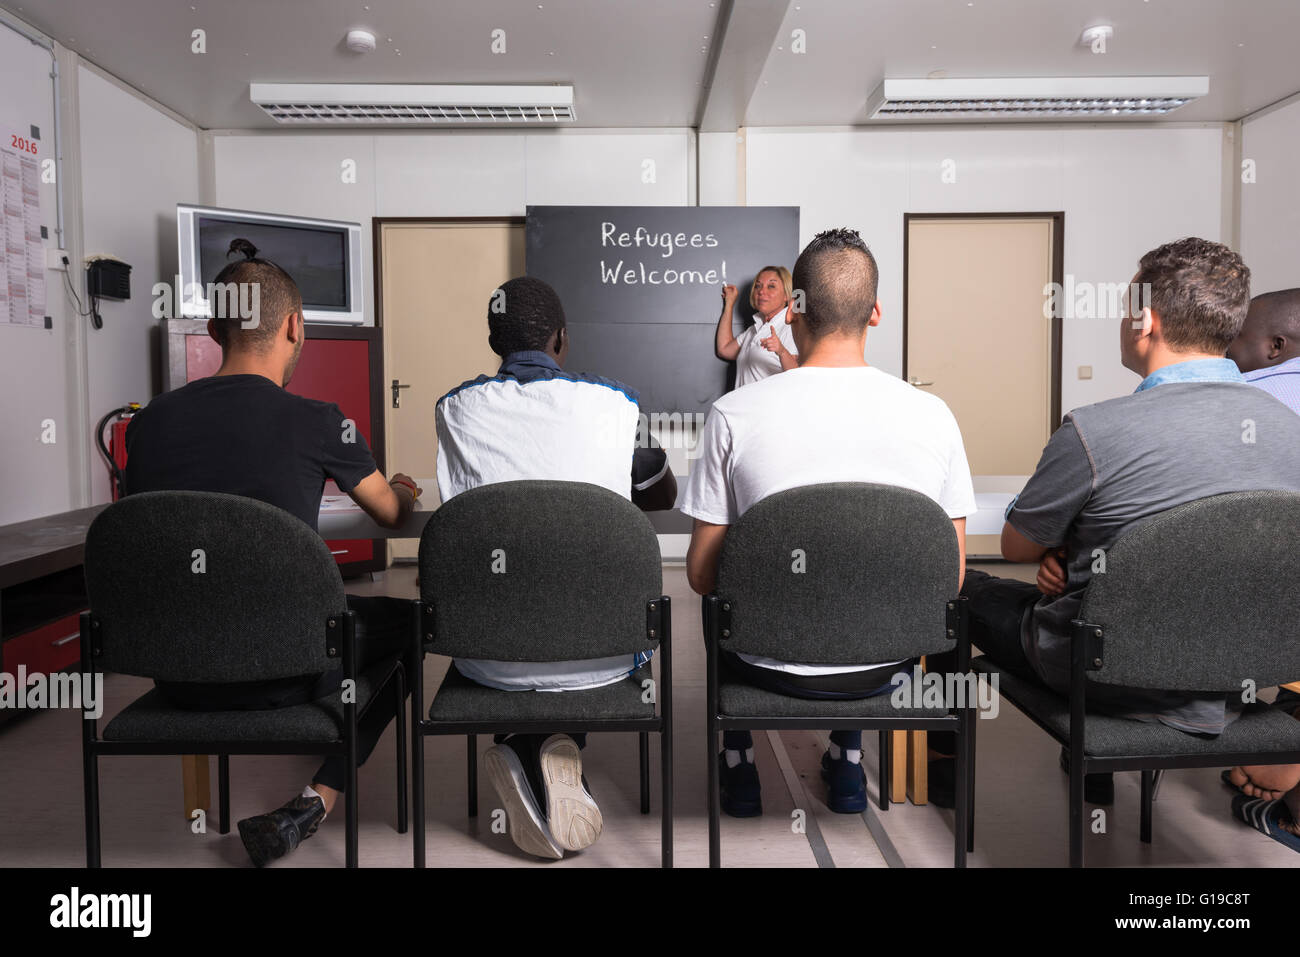 Refugees Welcome - Stock Image